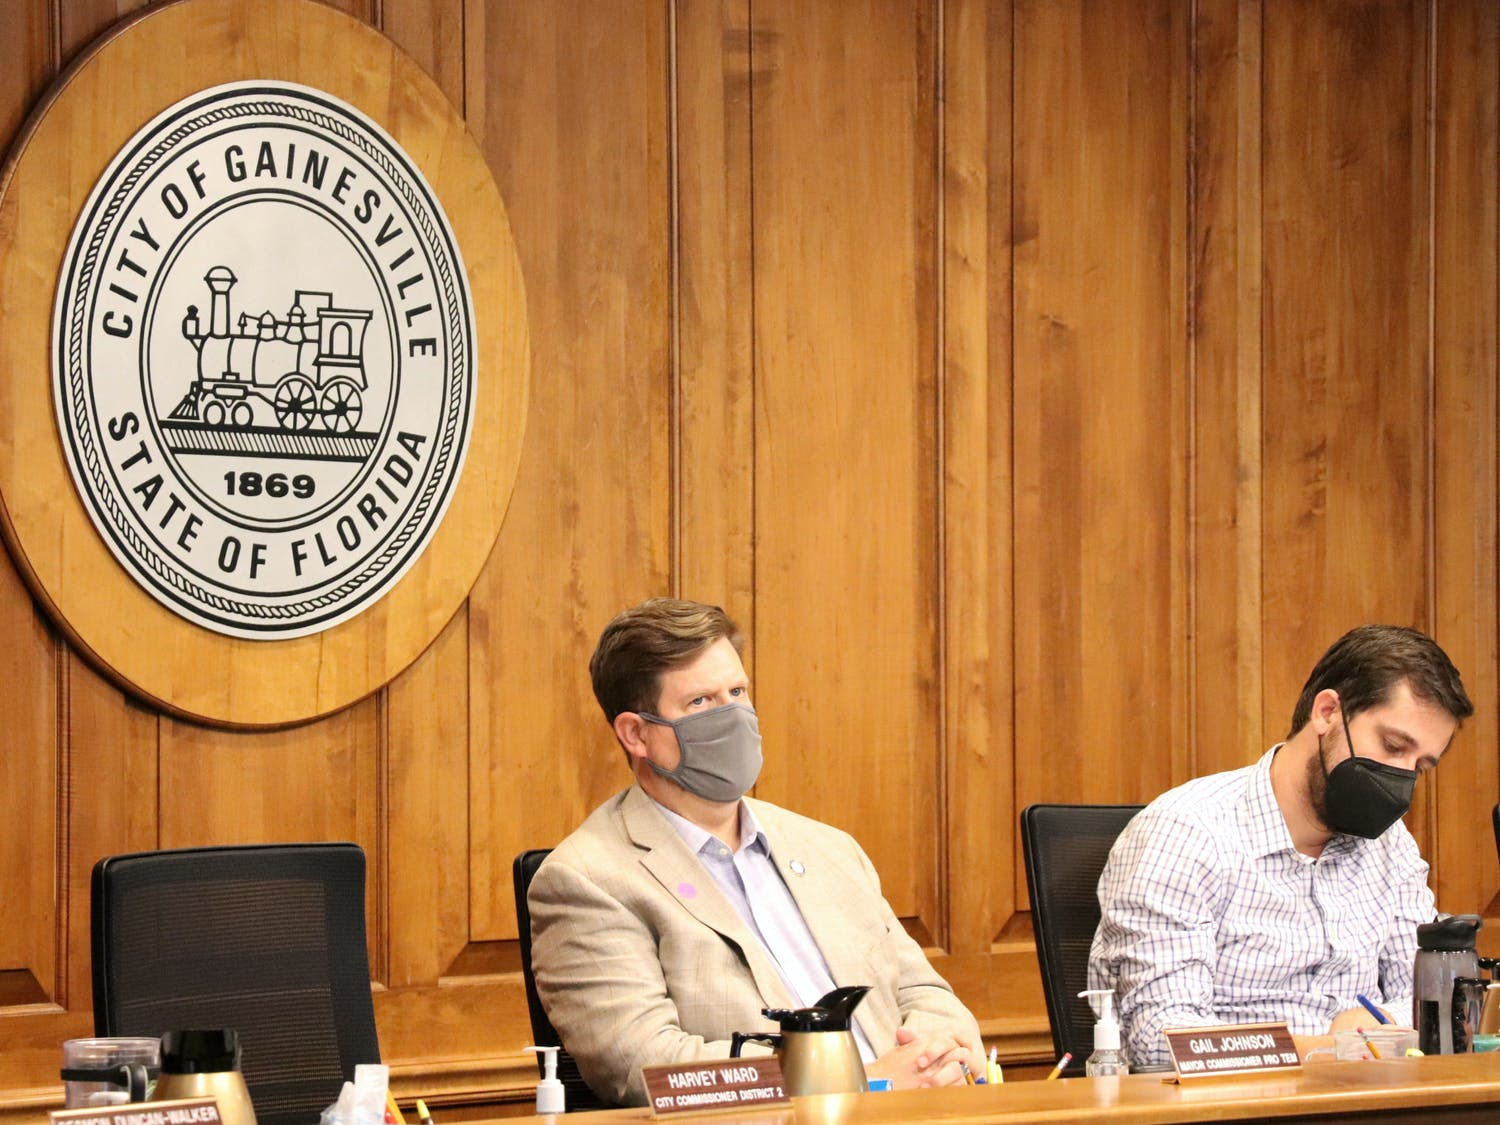 Gainesville Mayor Lauren Poe (left) and City Commissioner Adrian Hayes-Santos (right) listen to public comment at a City Commission meeting on Monday, Sept. 27, 2021.